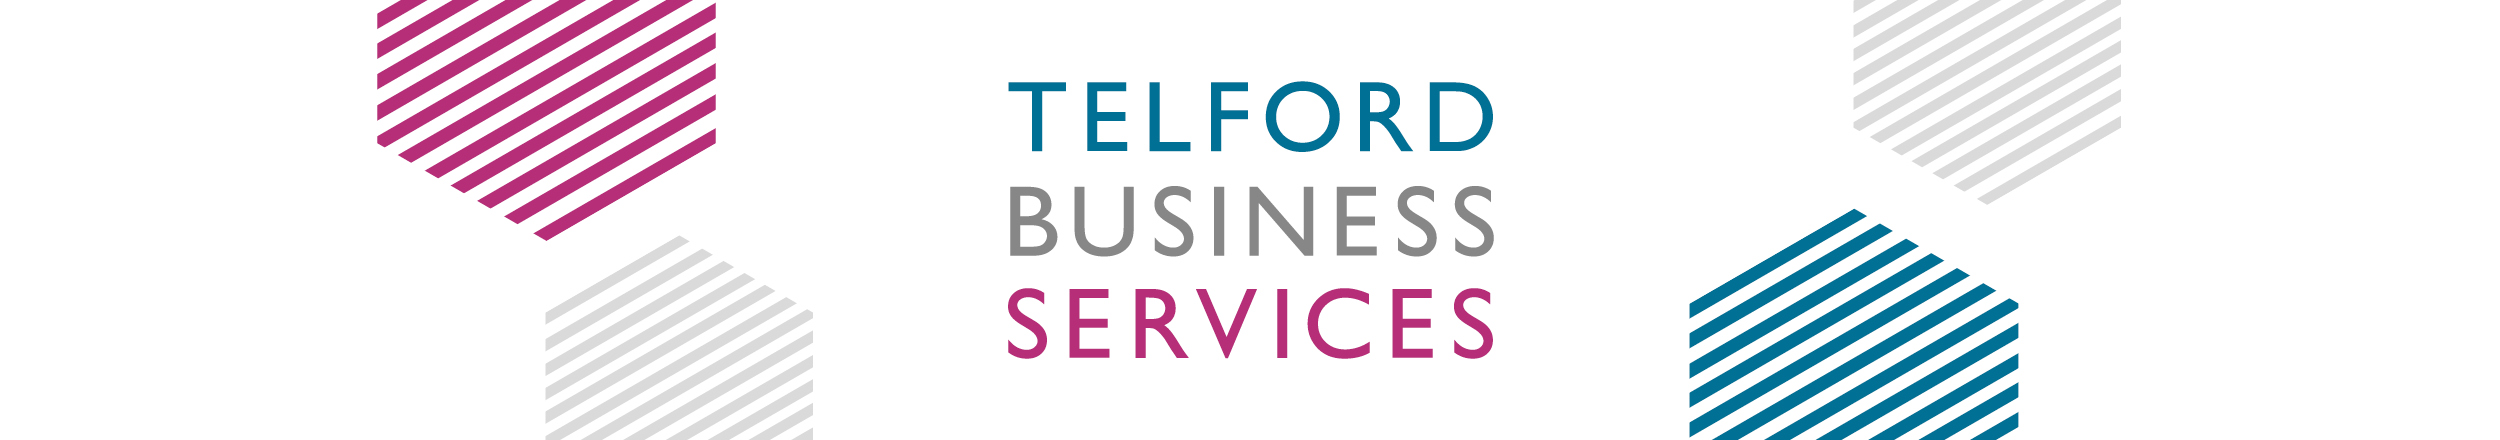 Telford Business Services logo